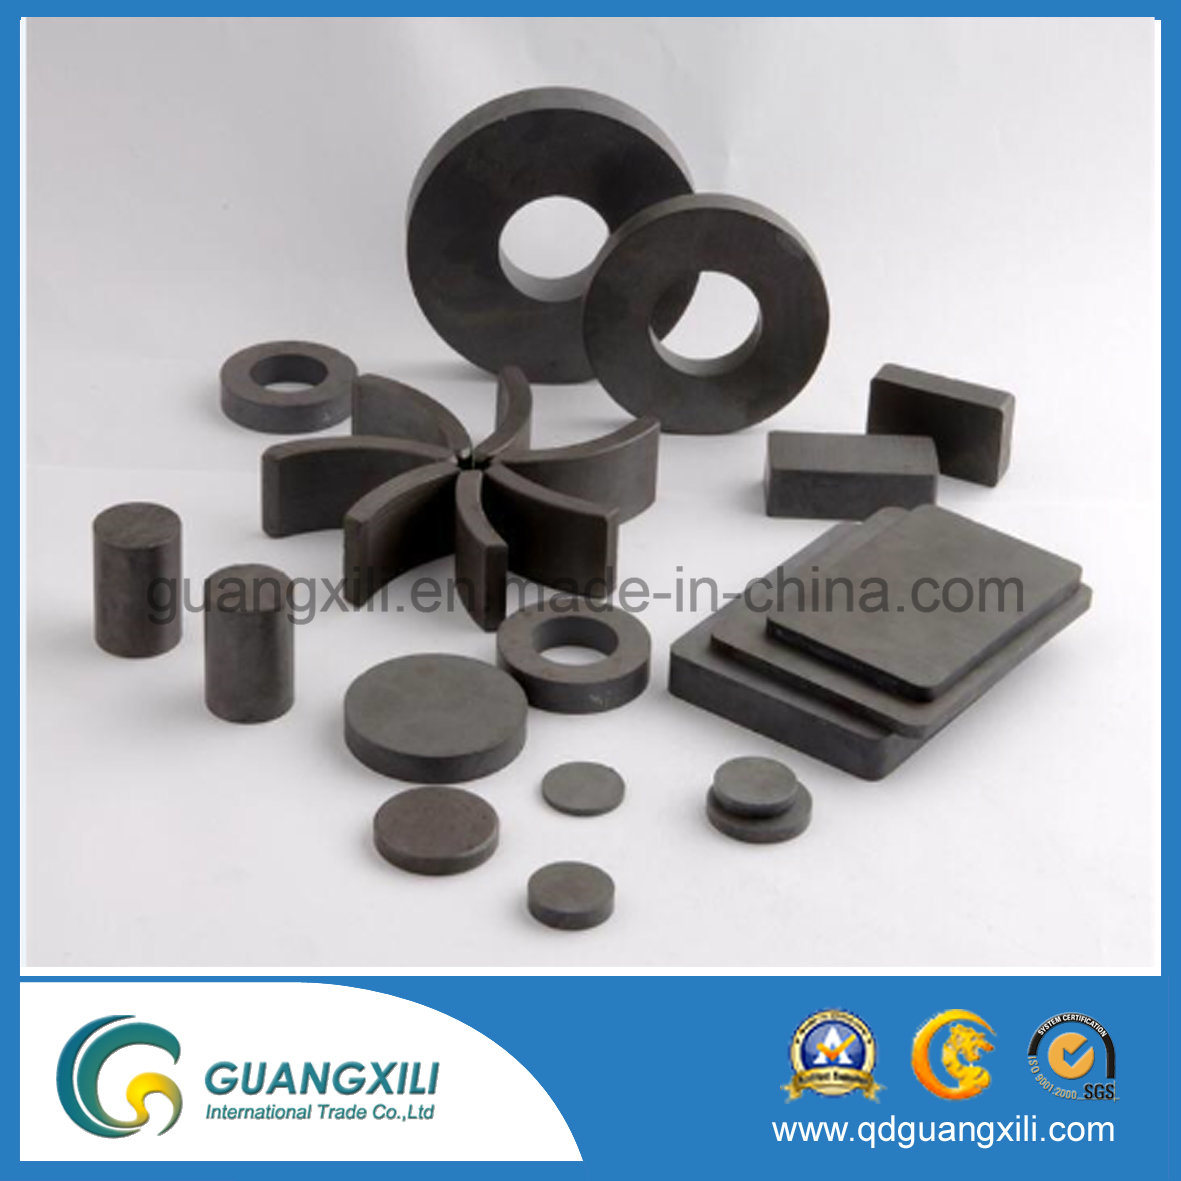 Y30bh Rare Earth Ferrite Magnet with ISO14001 Used for Wiper Motor